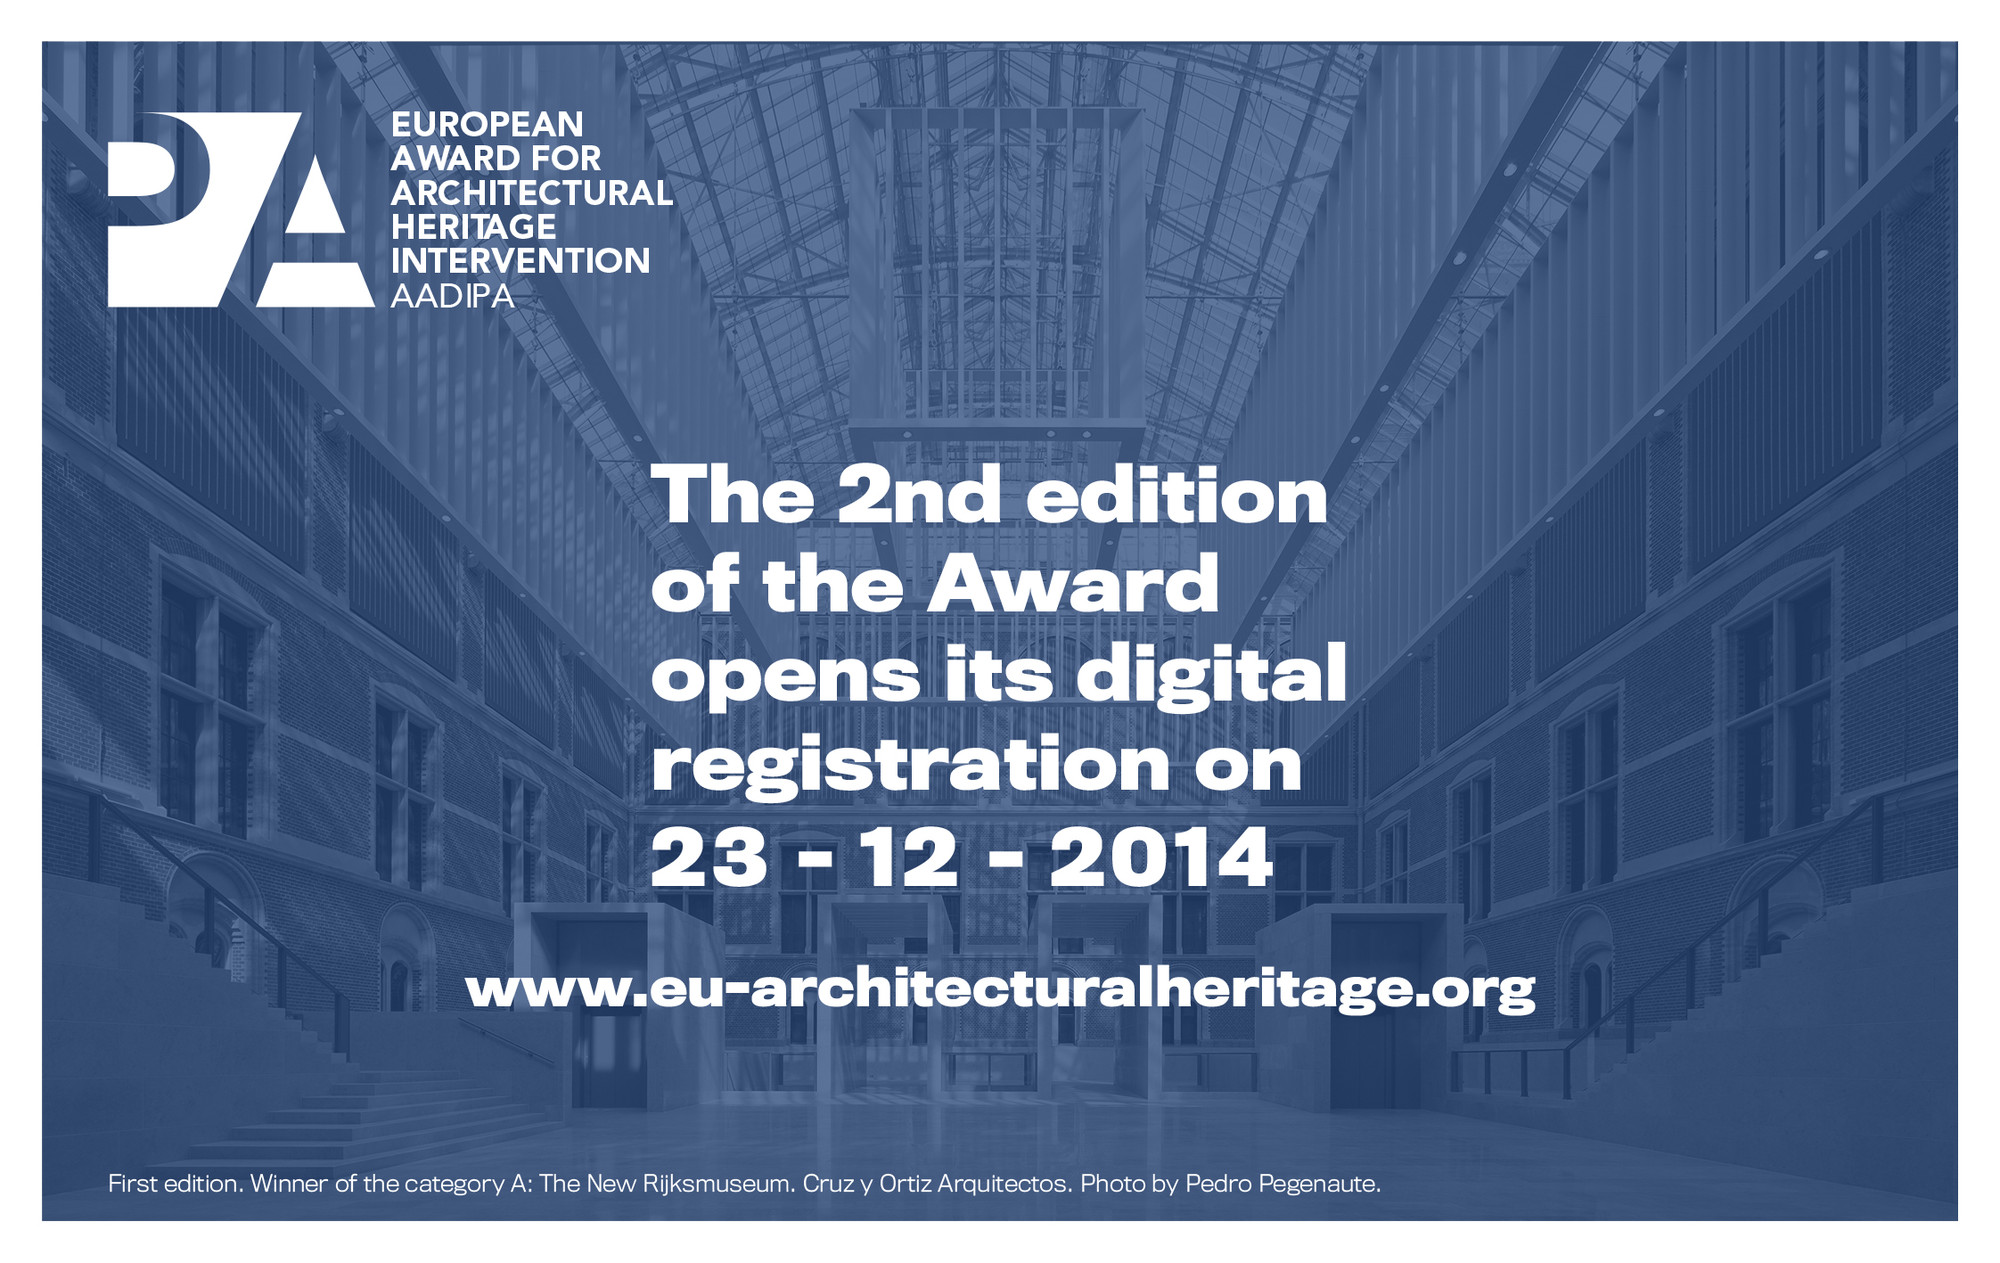 Registration Open: European Award for Architectural Heritage Intervention AADIPA, © European Award for Architectural Heritage Intervention AADIPA